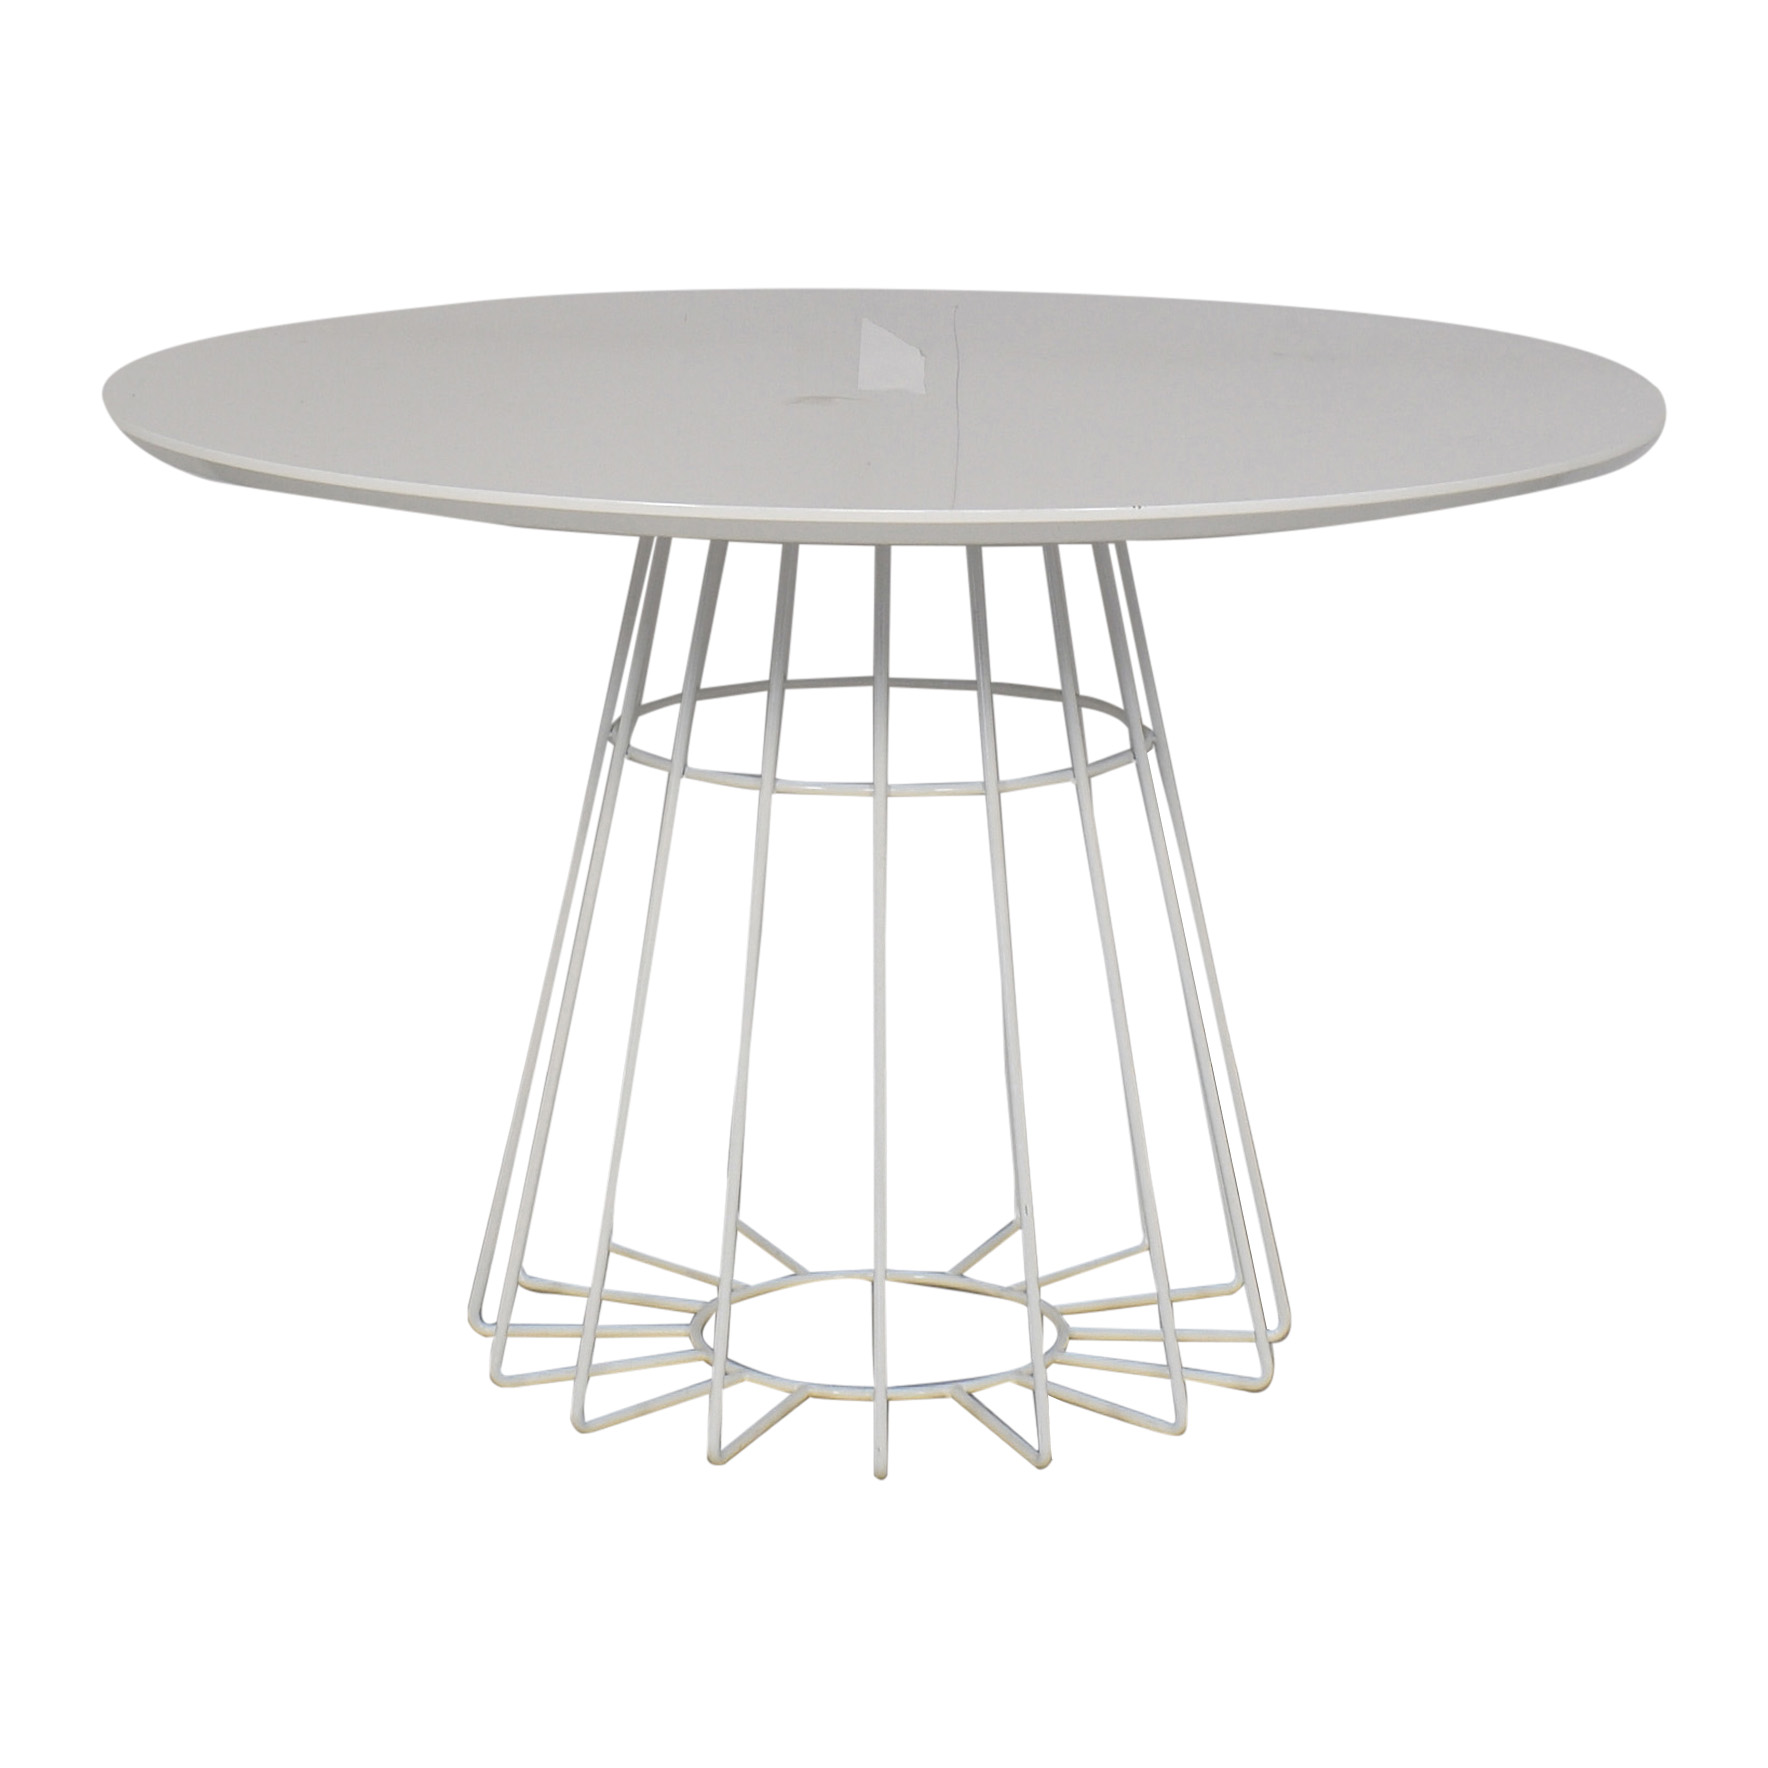 CB2 CB2 Compass Dining Table coupon